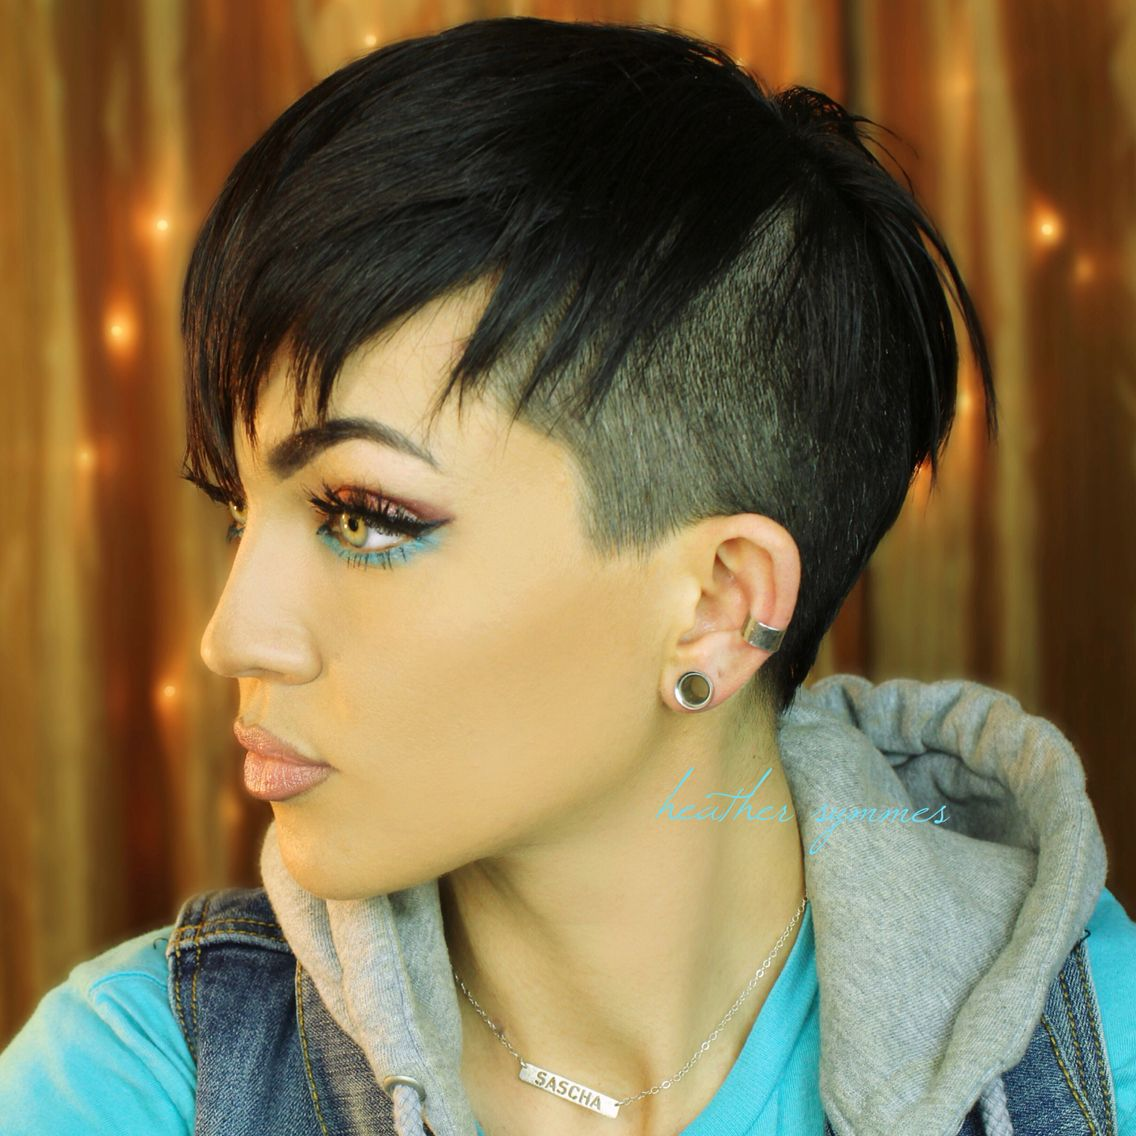 Continue to perfect pixie haircuts part 2 the traditional pixie - Black Undercut Pixie Haircut Heather Symmes